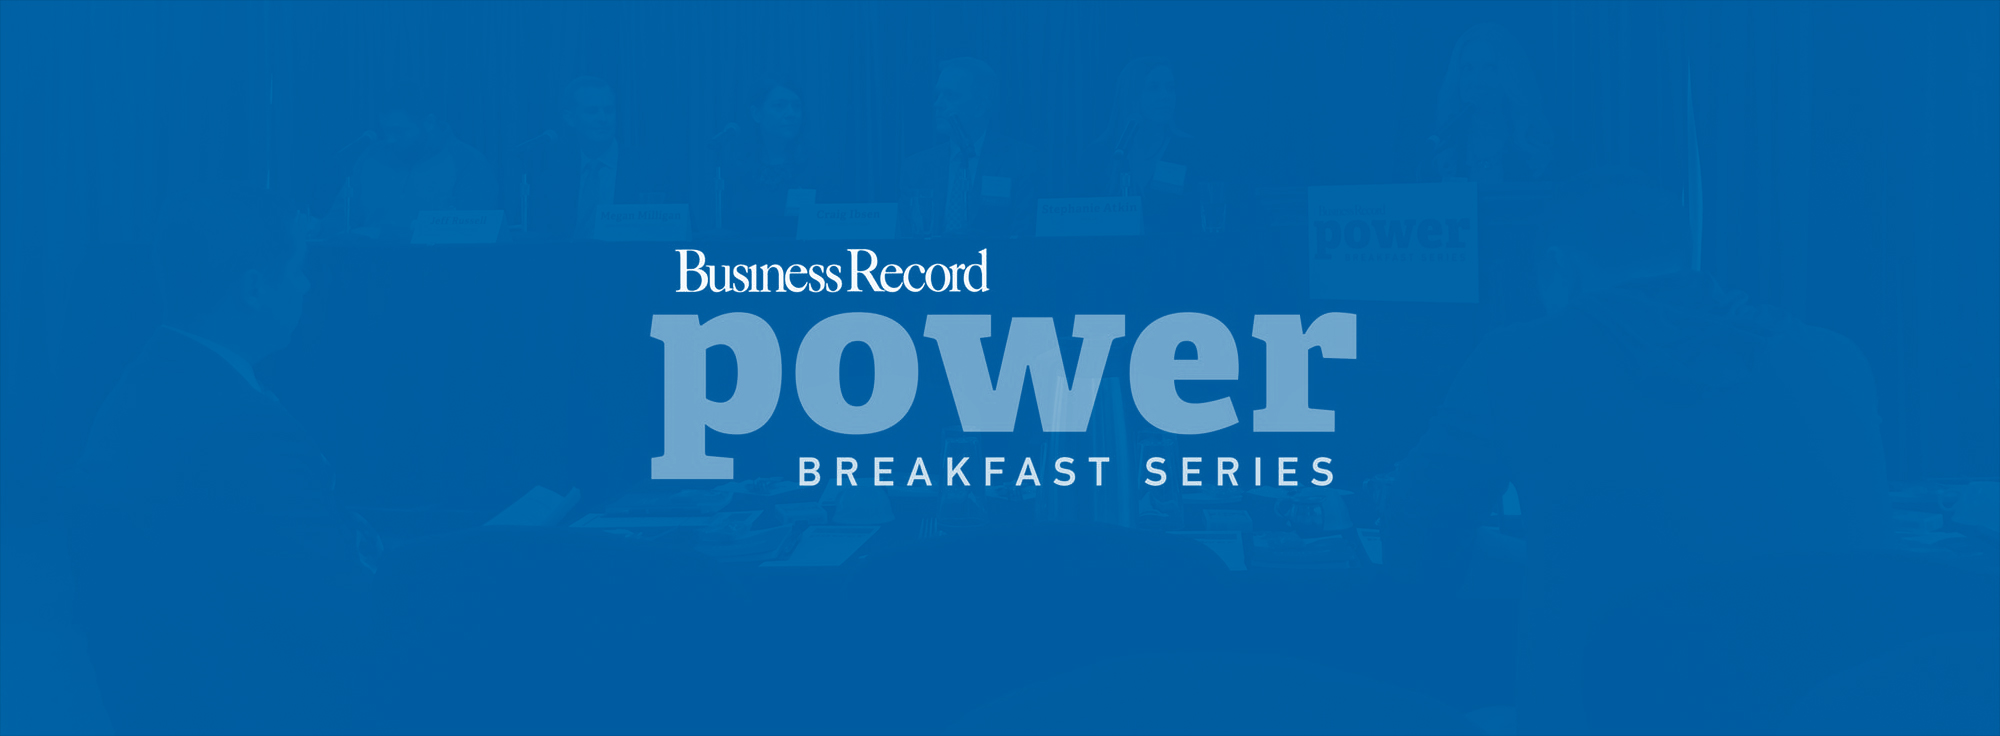 business record power breakfast featured image